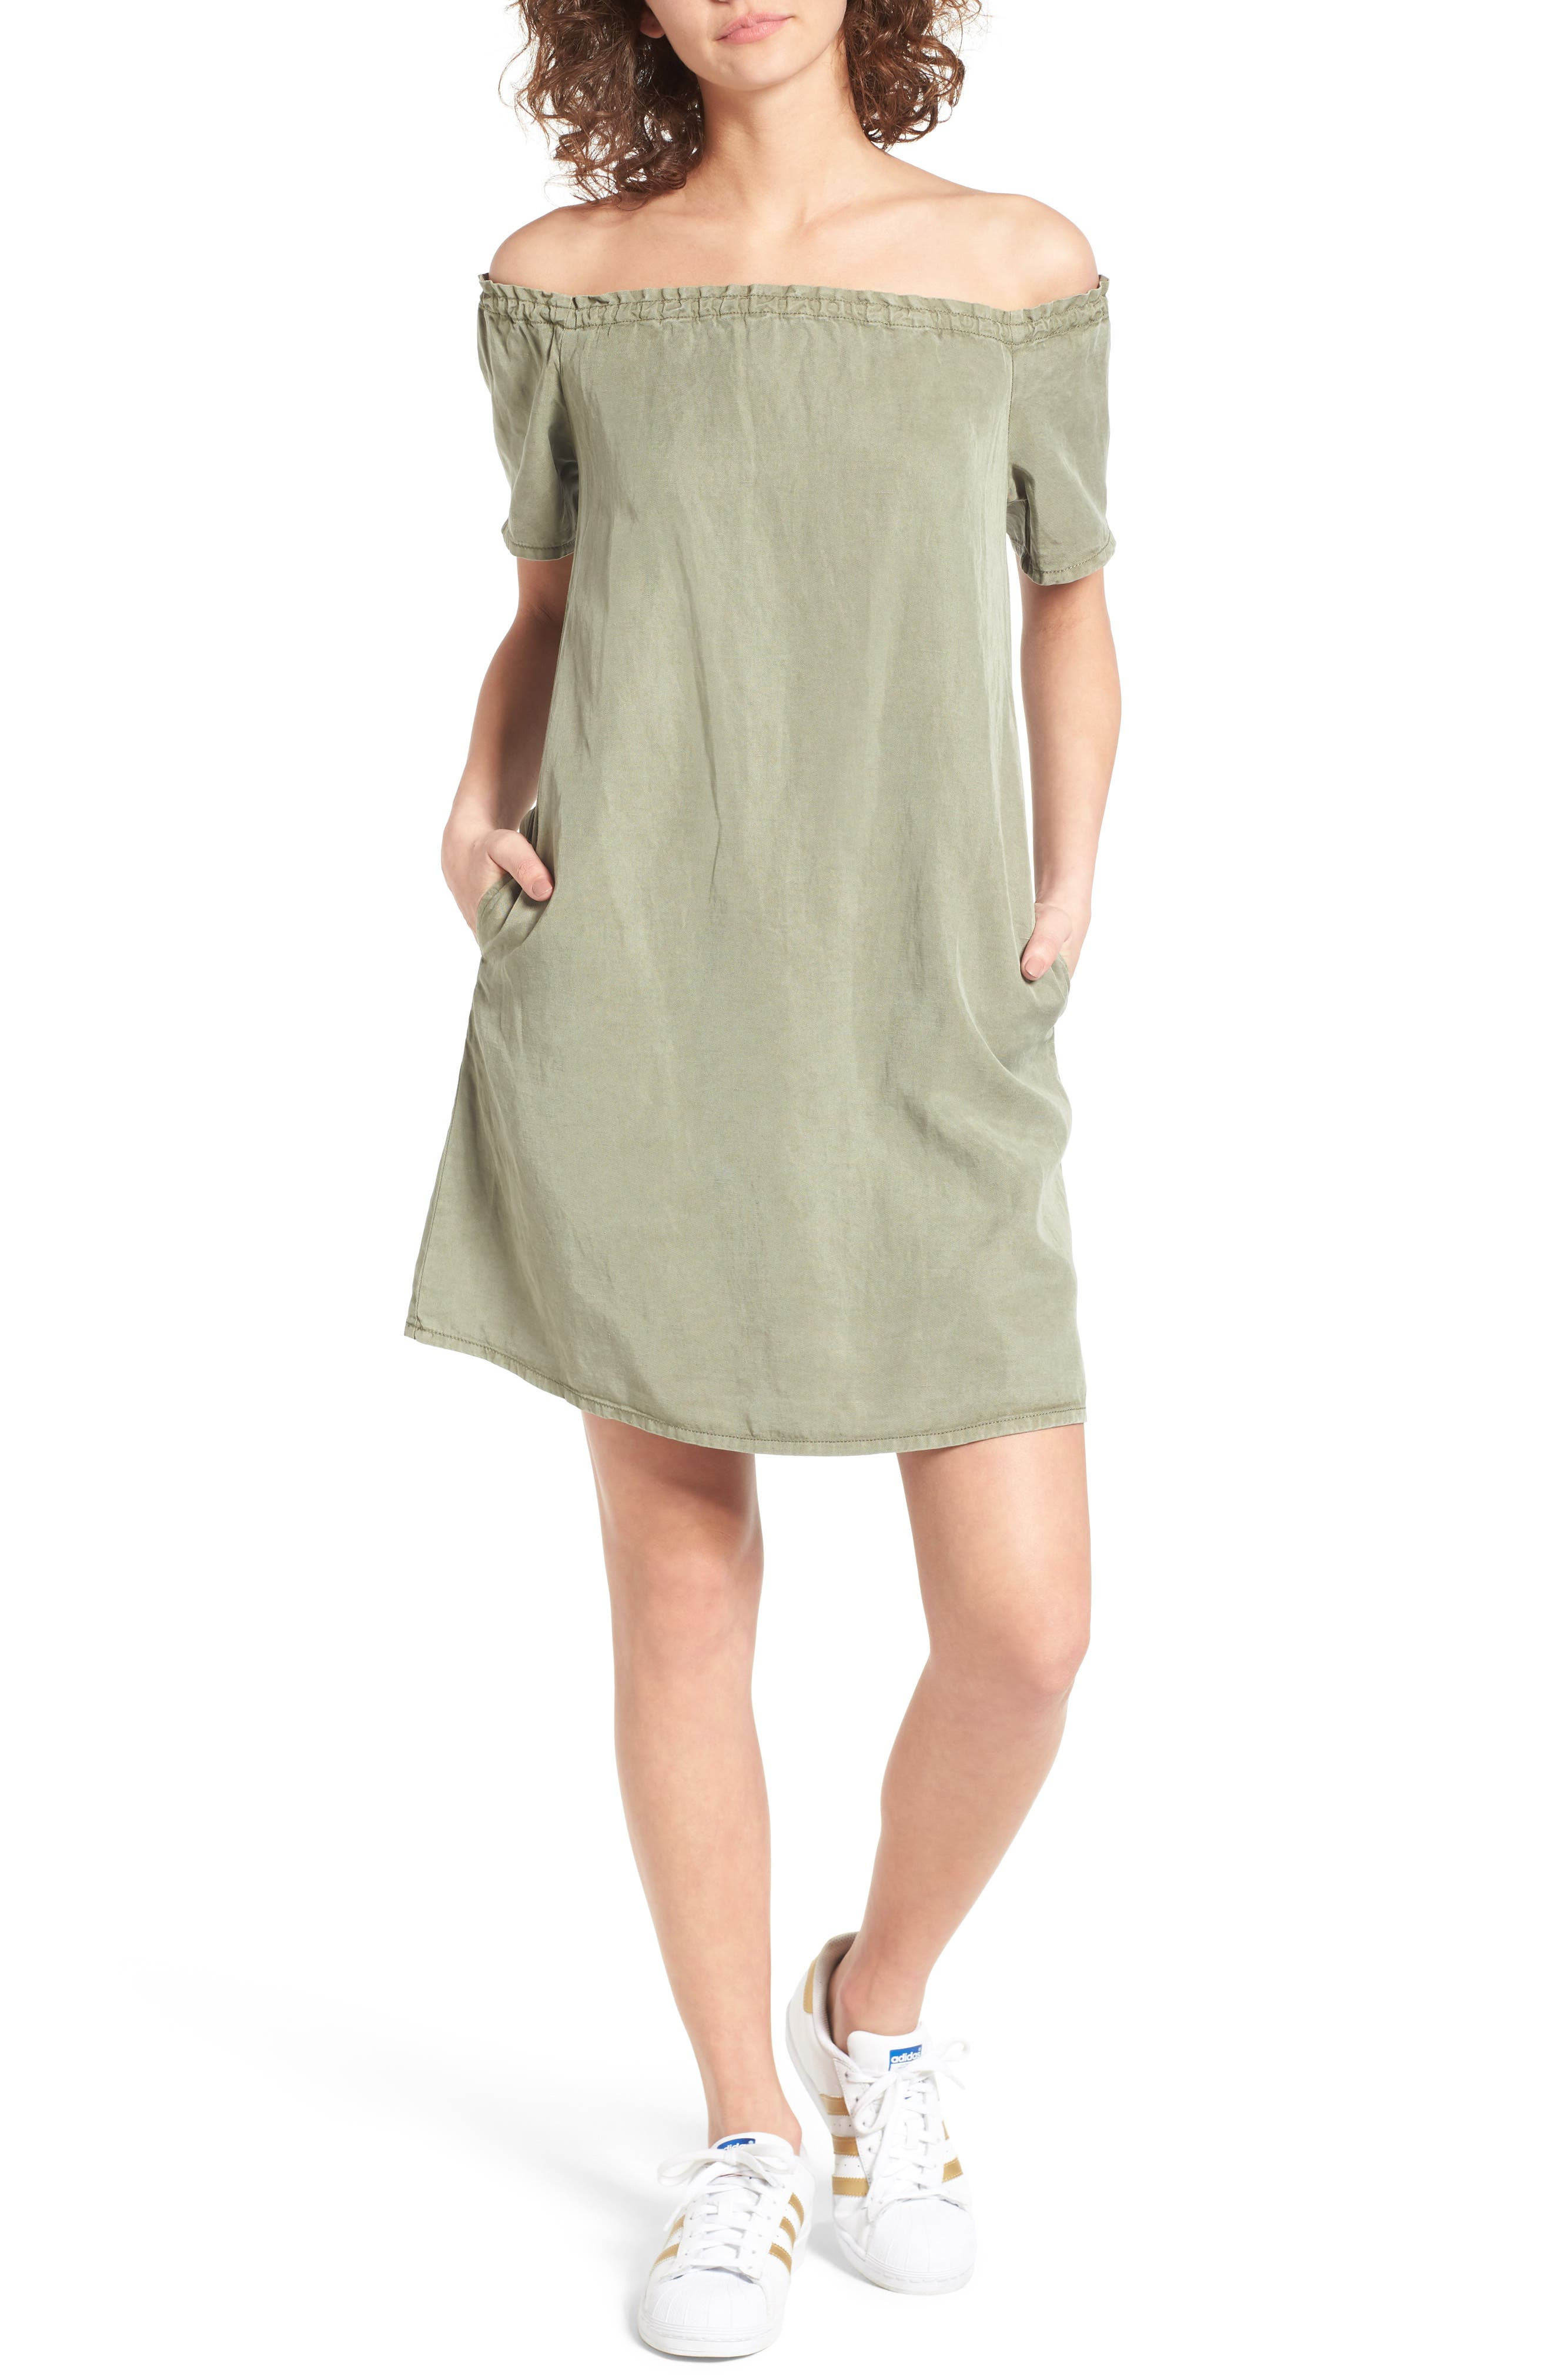 The Harley Off the Shoulder Dress,                             Main thumbnail 1, color,                             319